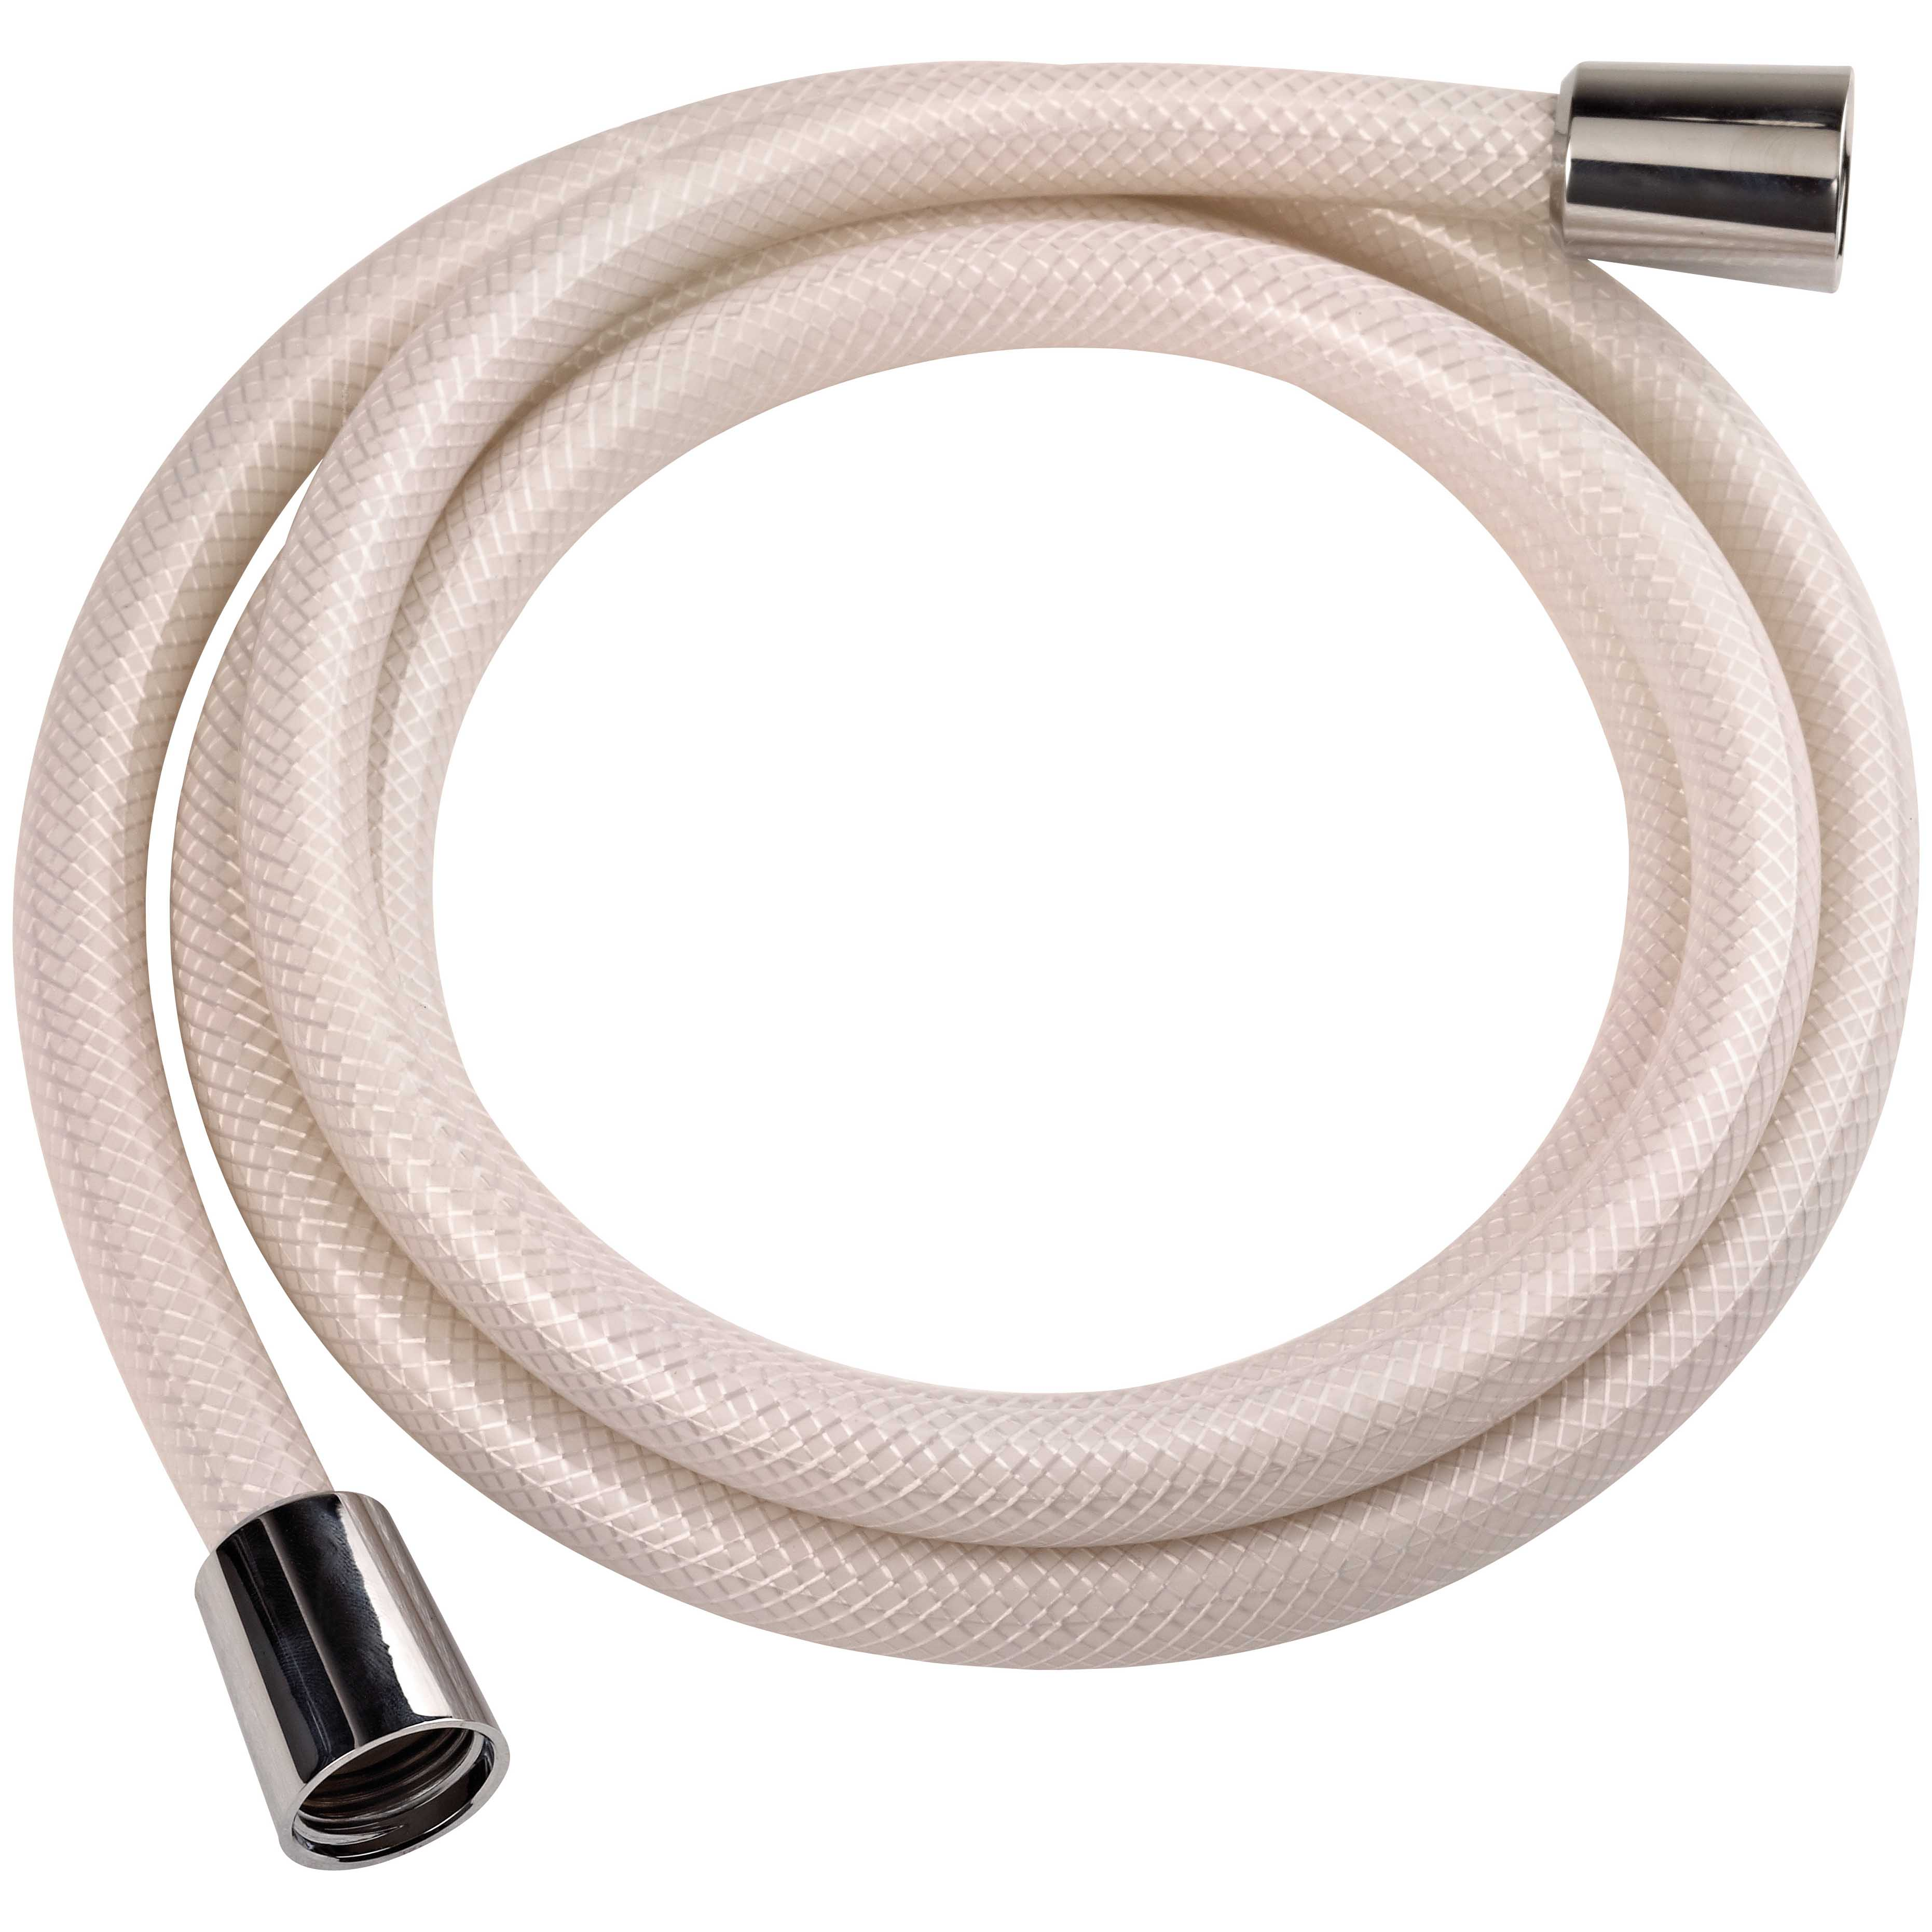 Picture of Boston Harbor B42014 Shower Hose with Hex Nut, 72 in L Hose, PVC